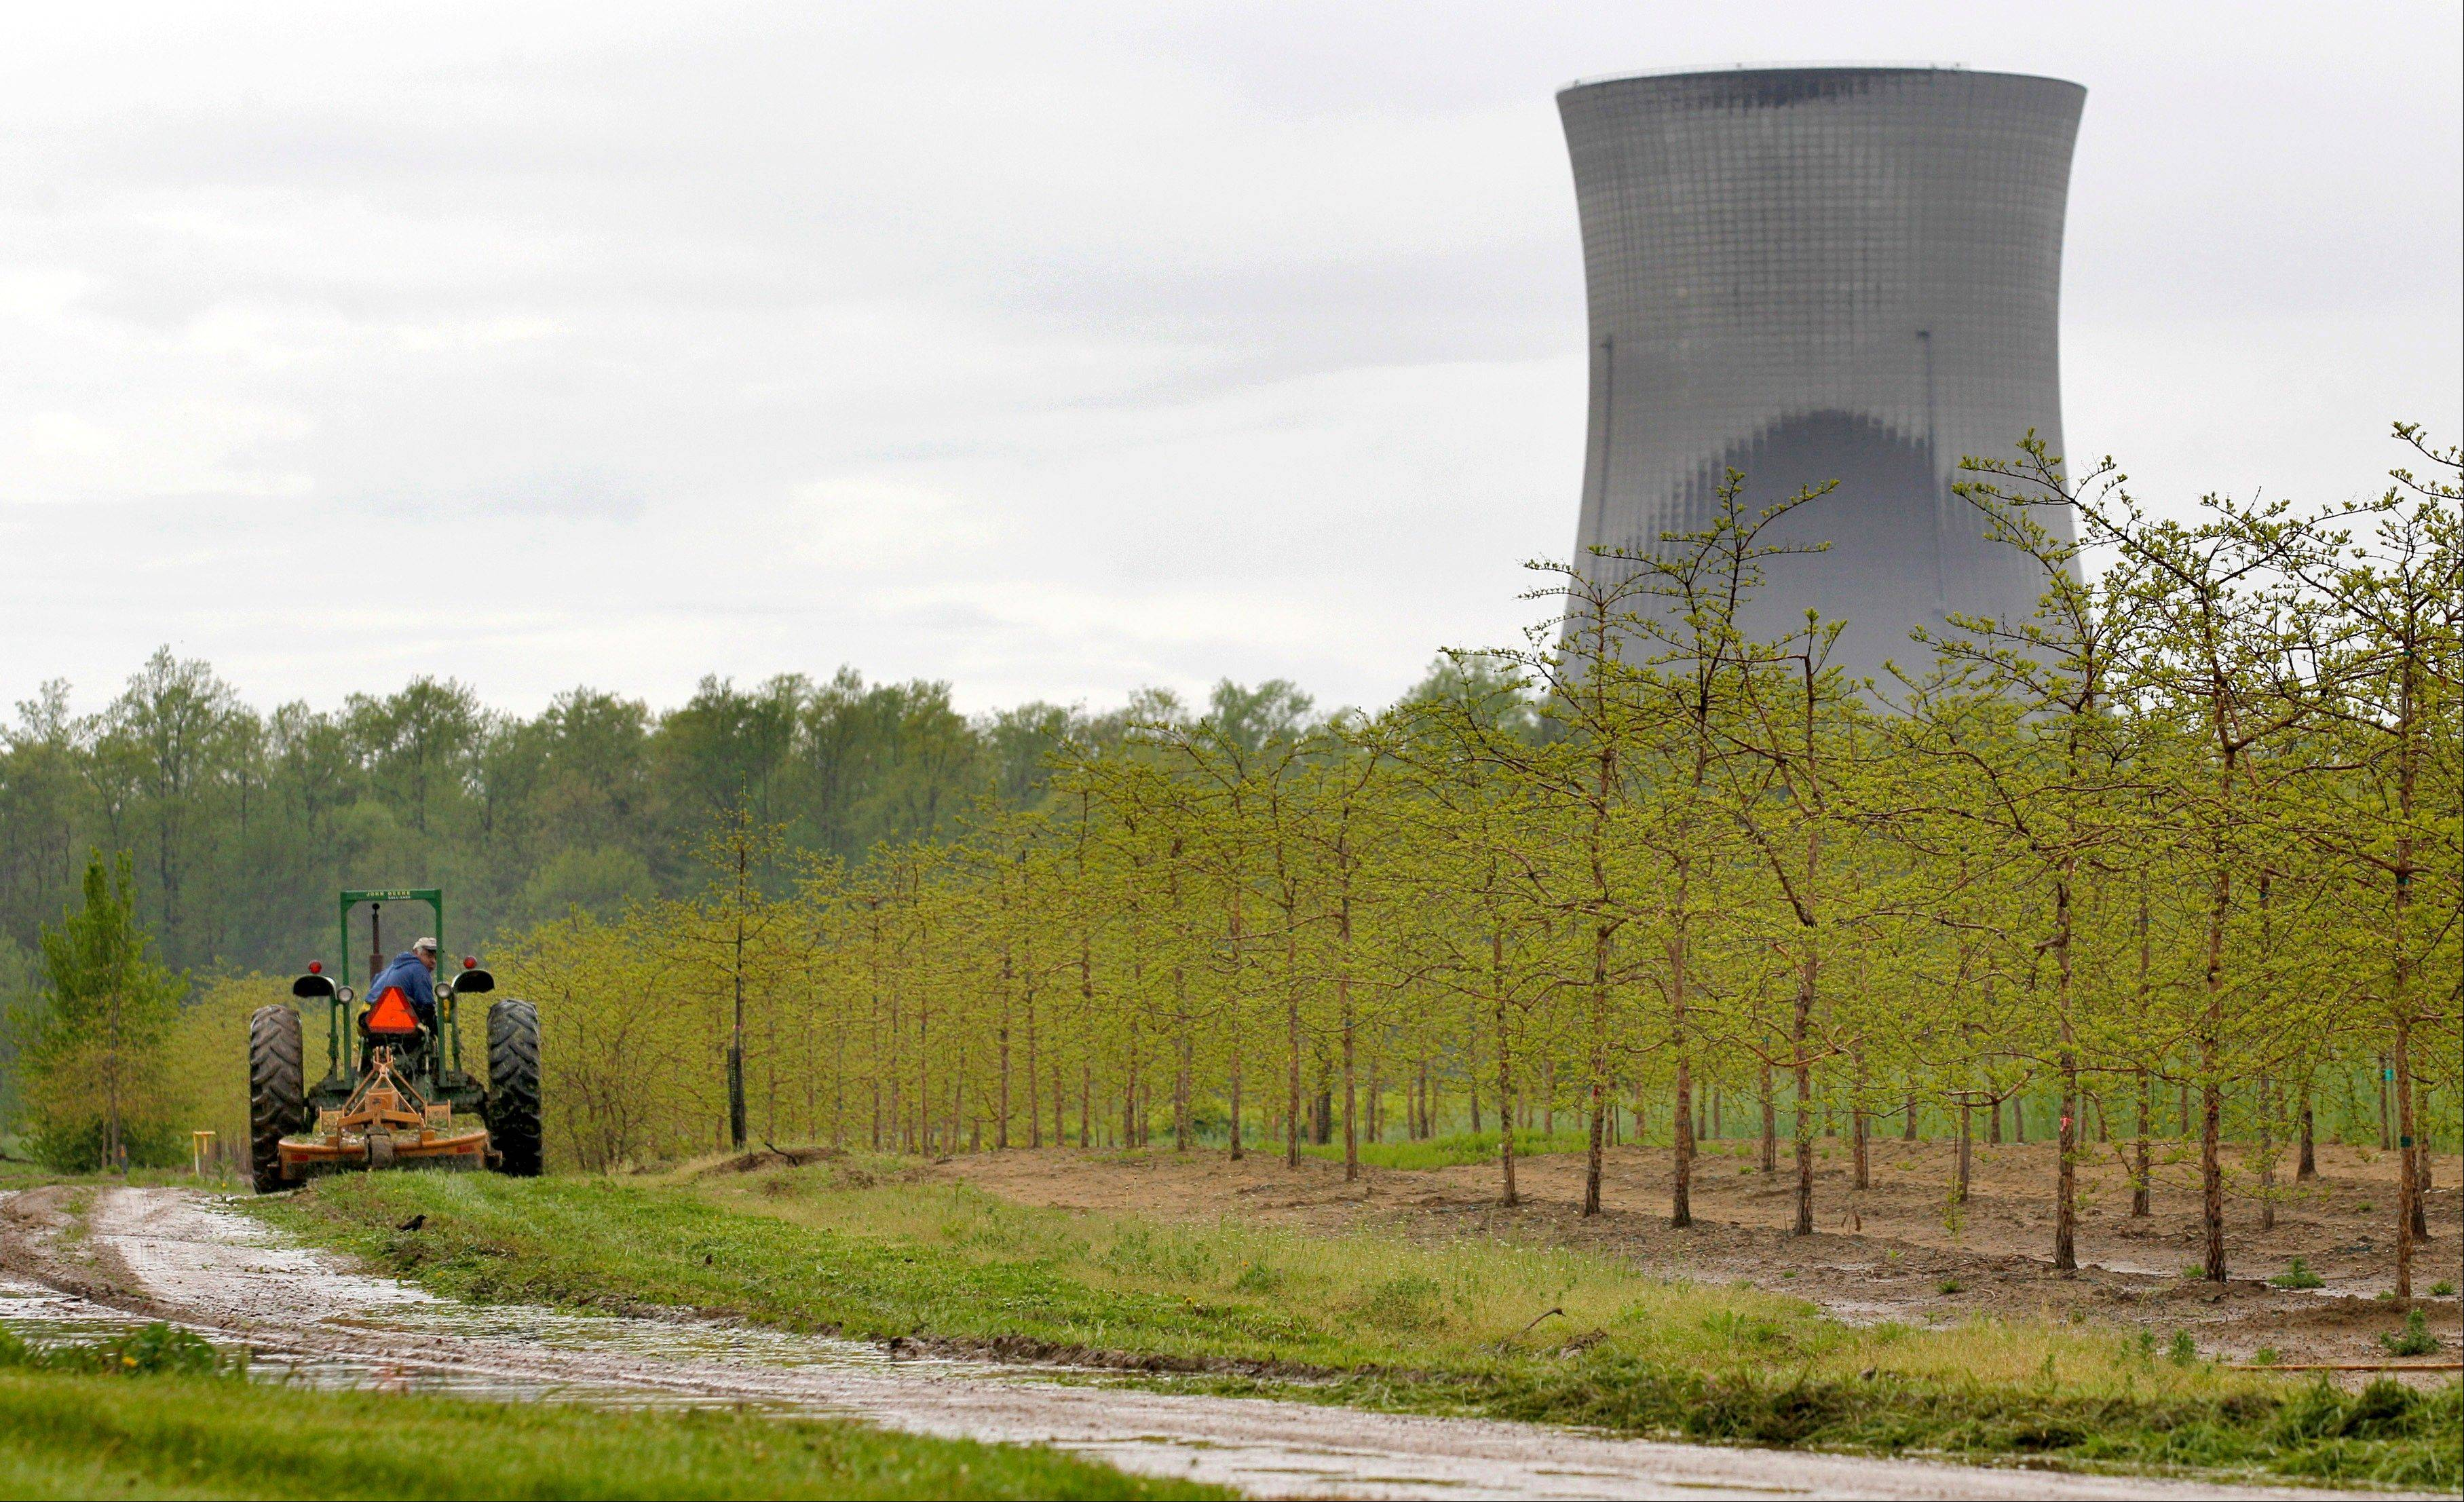 A worker drives a tractor at a tree farm in North Perry, Ohio, near the cooling towers of the Perry Nuclear Power Plant. A study determined that six Illinois nuclear power plants logged hundreds of safety violations from 2000 through 2012, most of them considered low-level.